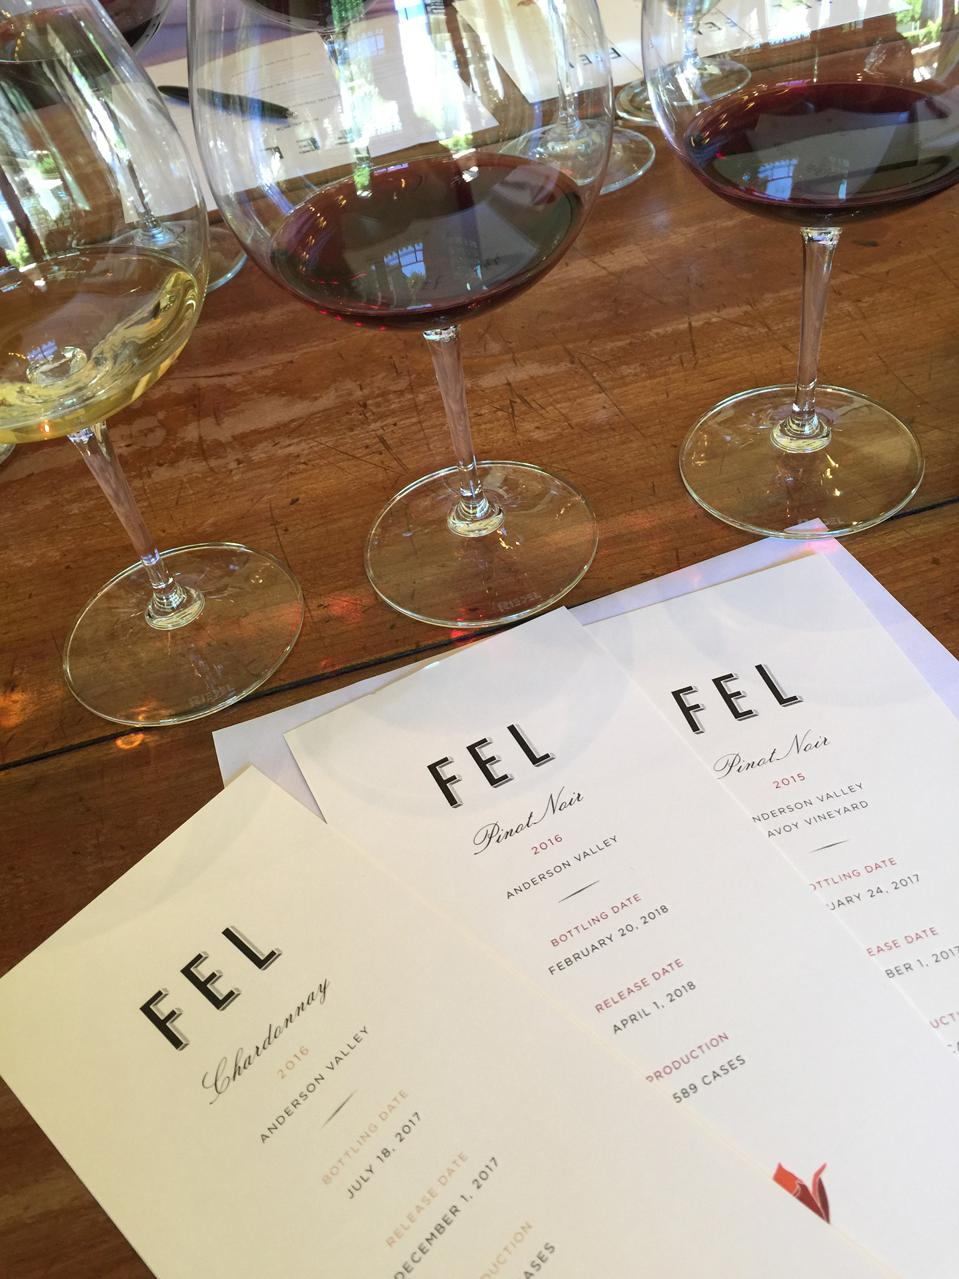 FEL is the sister winery of Cliff Lede in Anderson Valley.